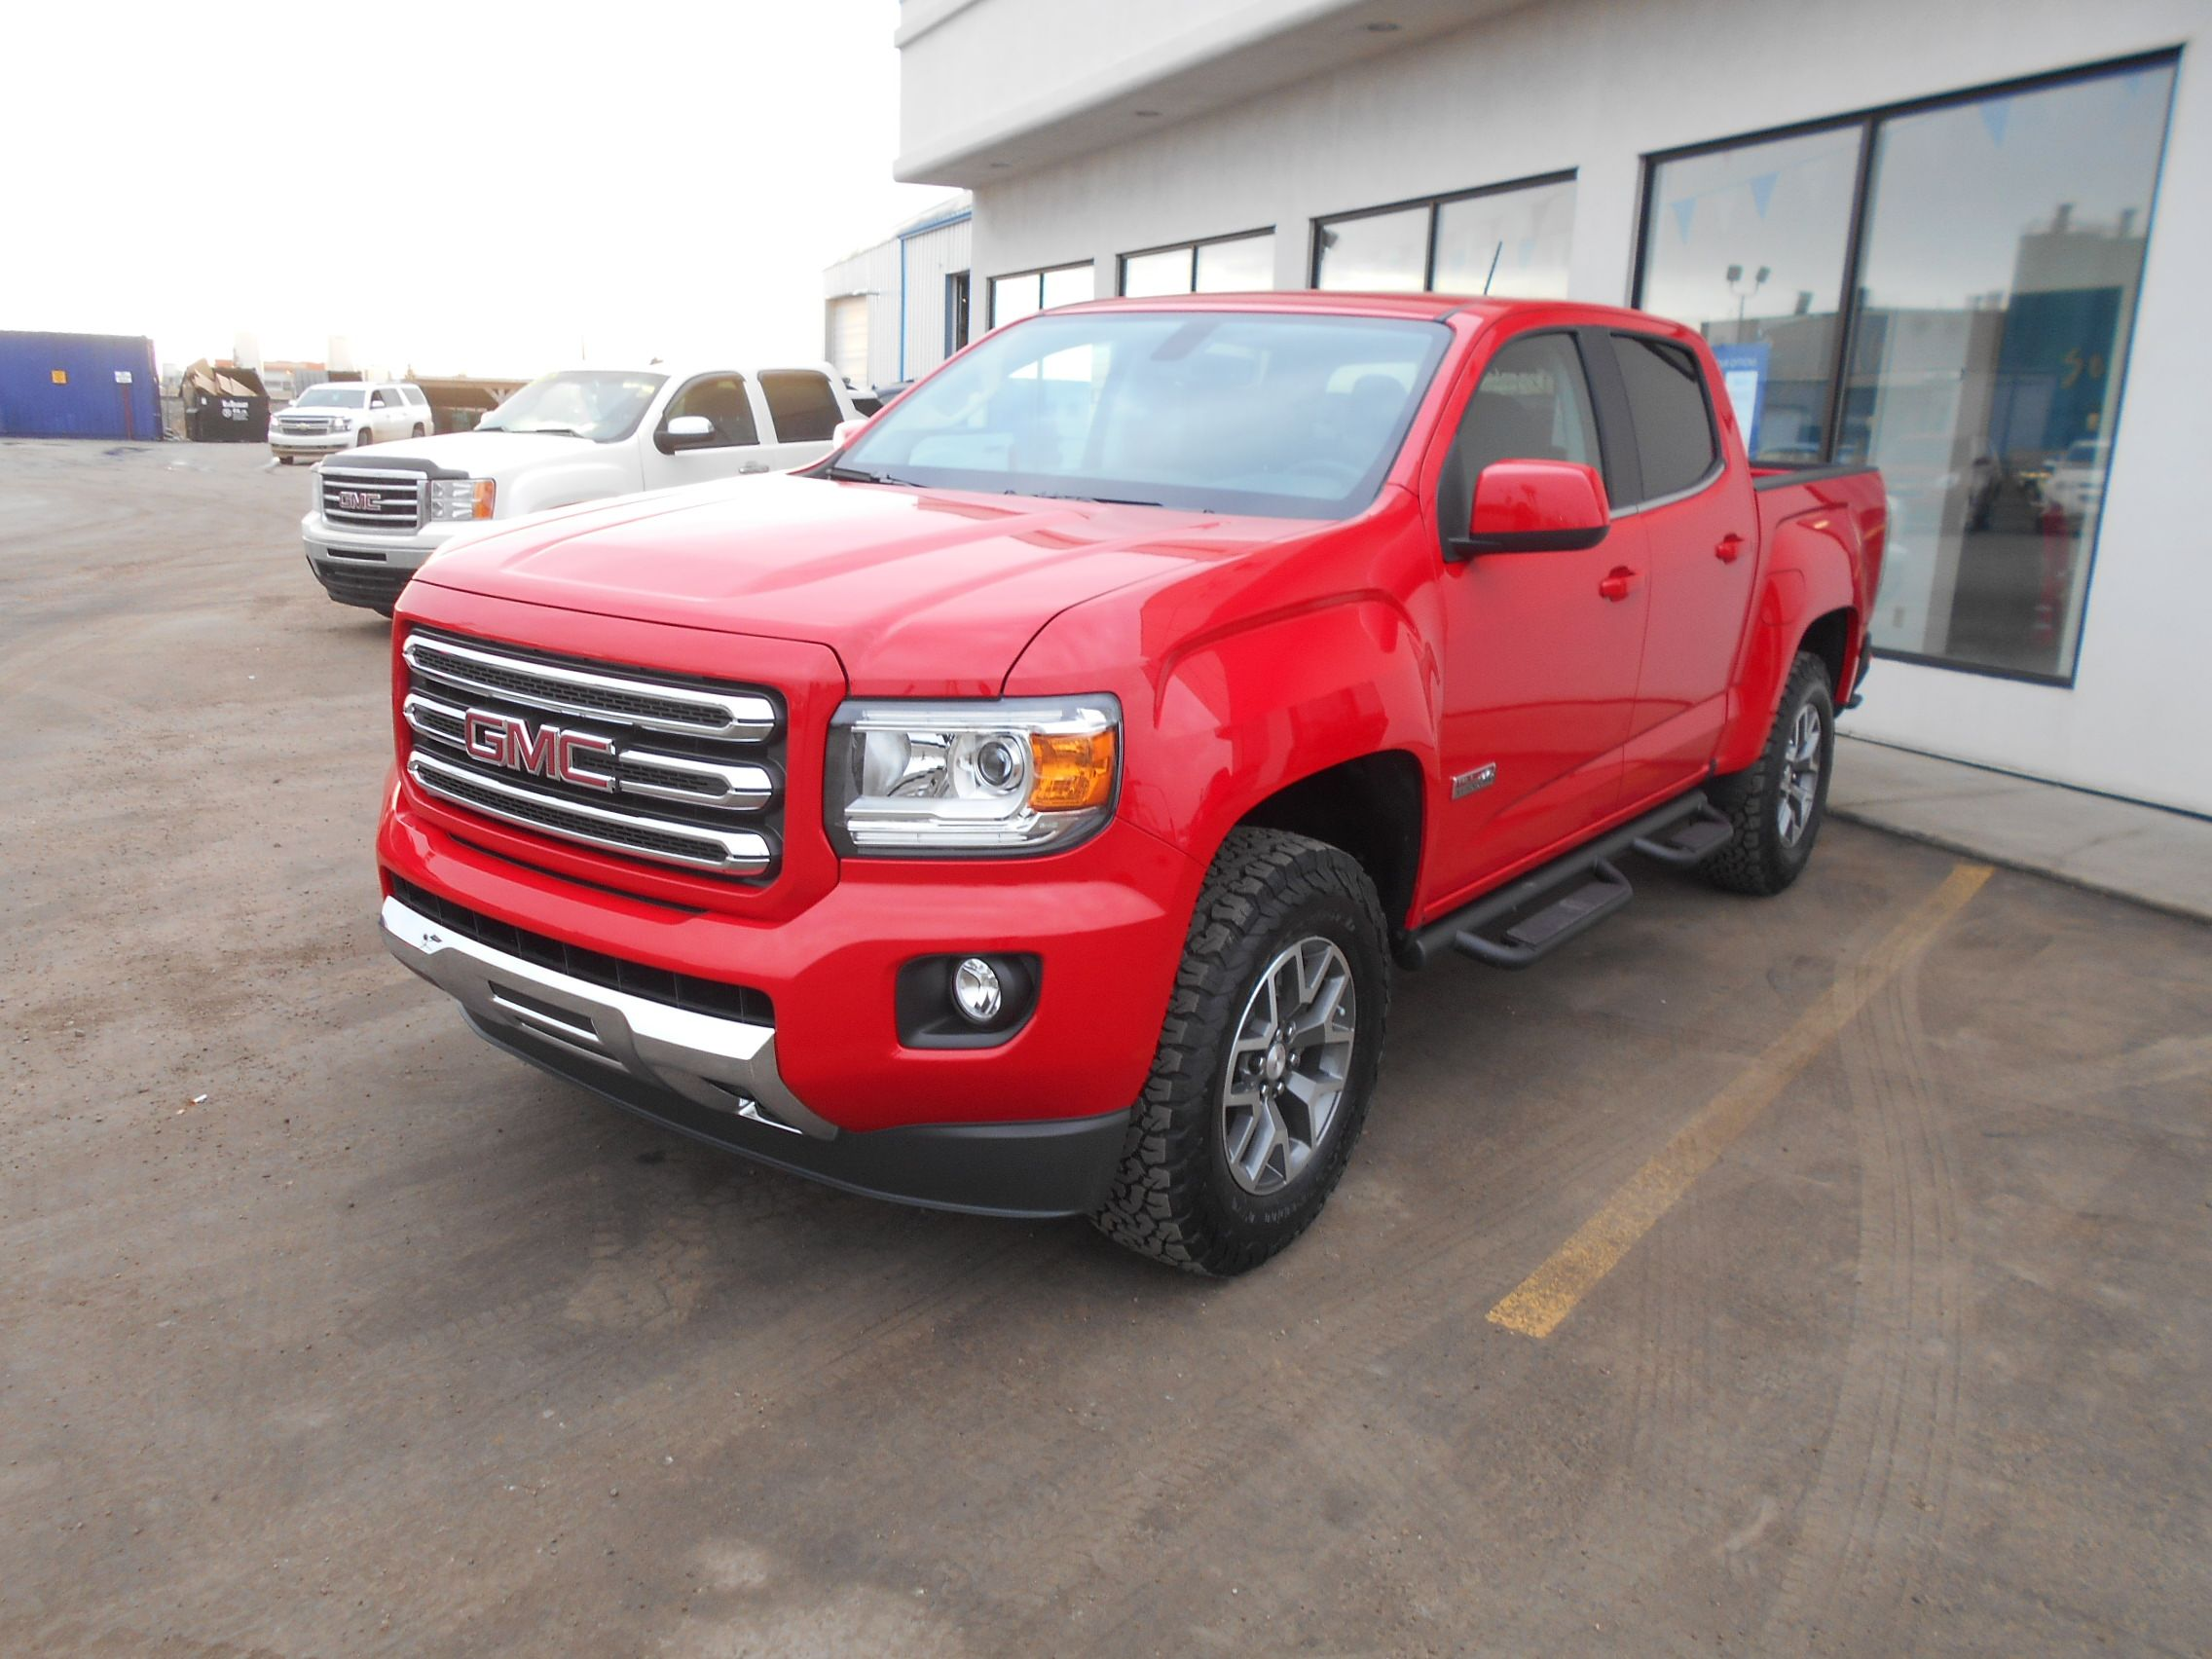 2015 gmc canyon schwab custom truck comes equipped with leveling kit upgraded tires